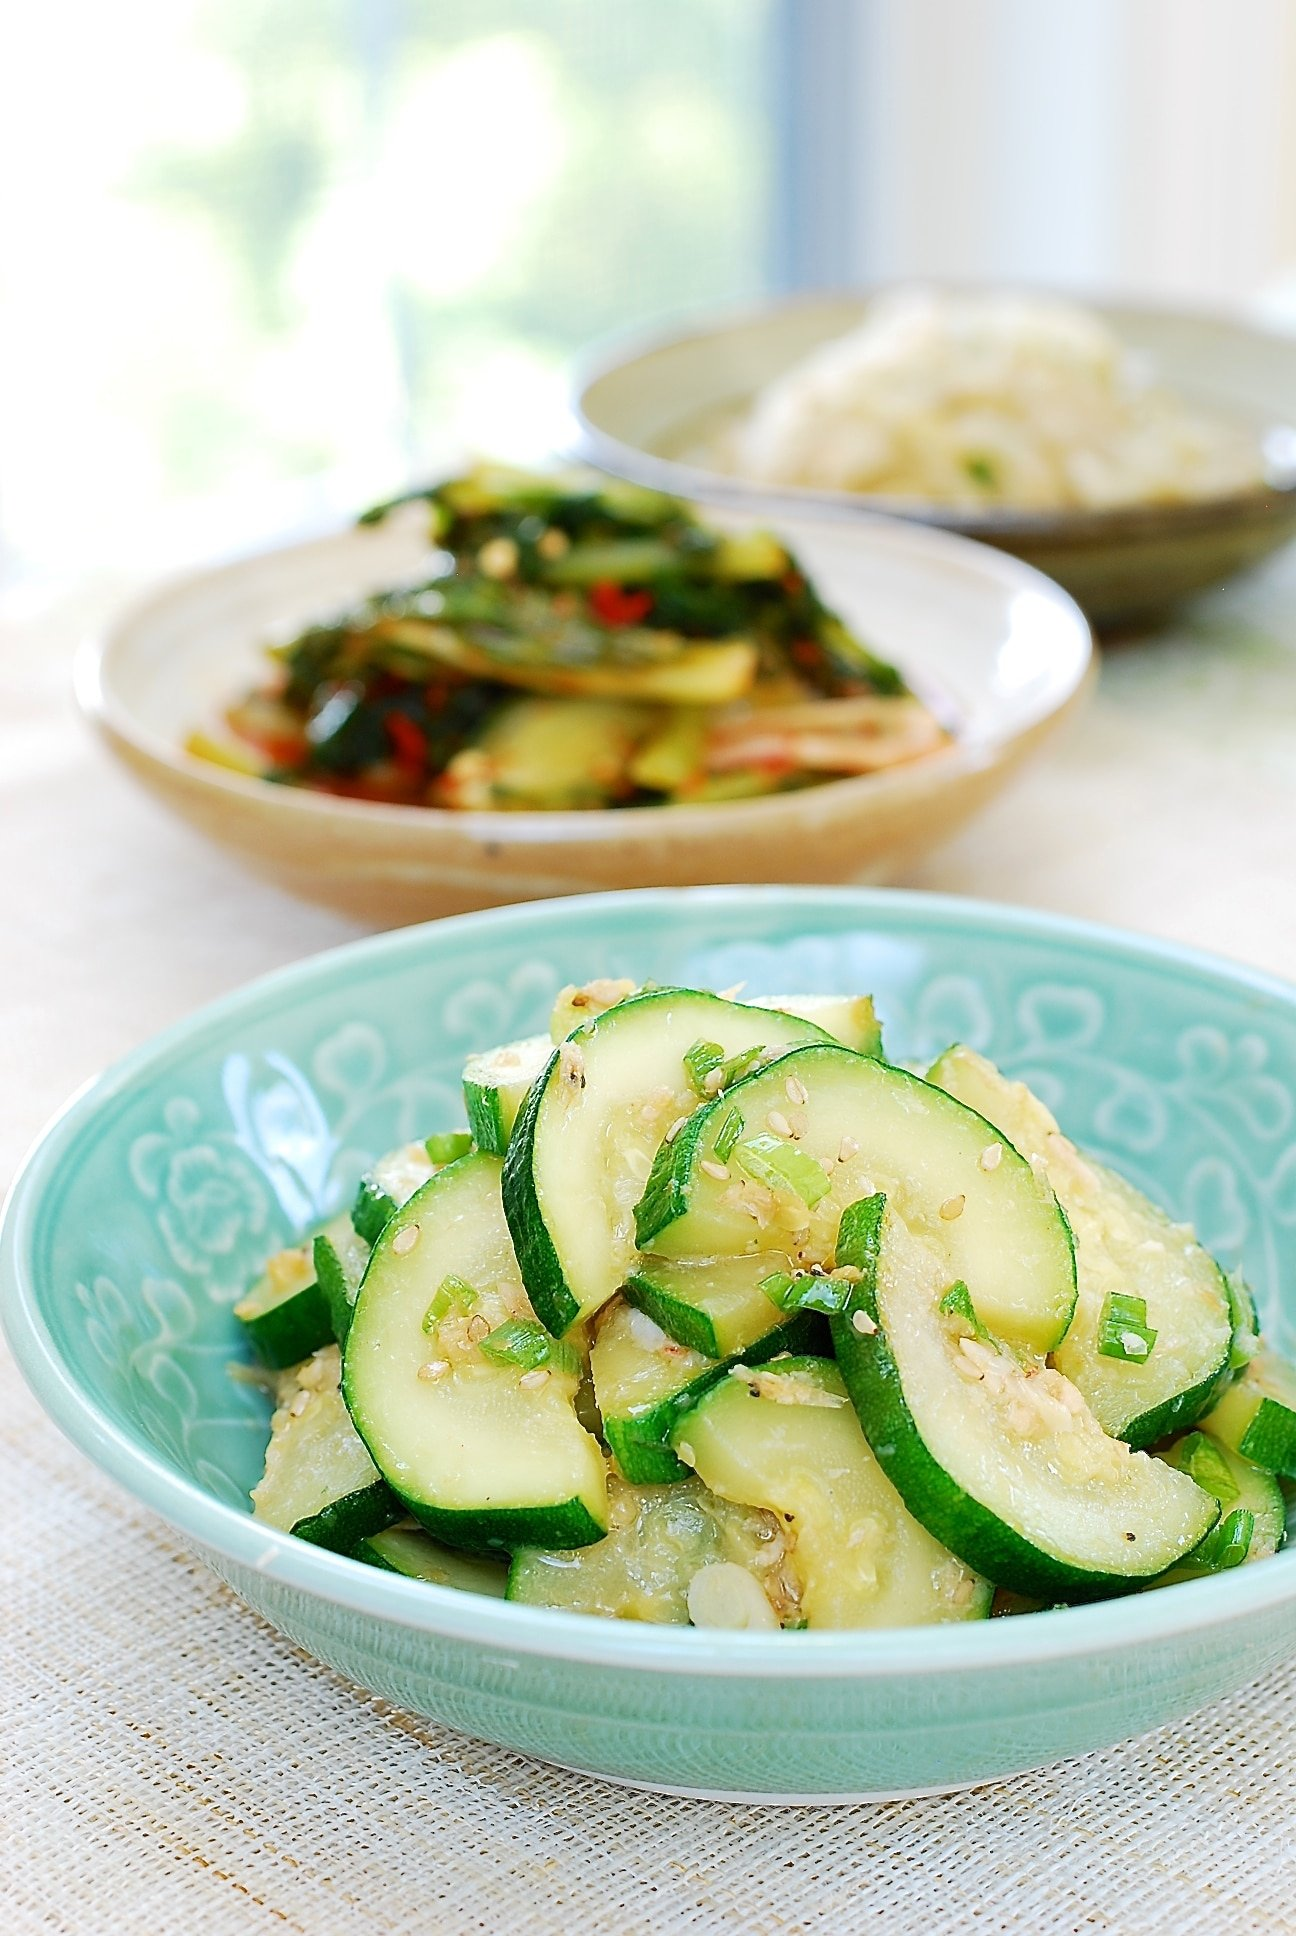 Stir-fried zucchini side dish